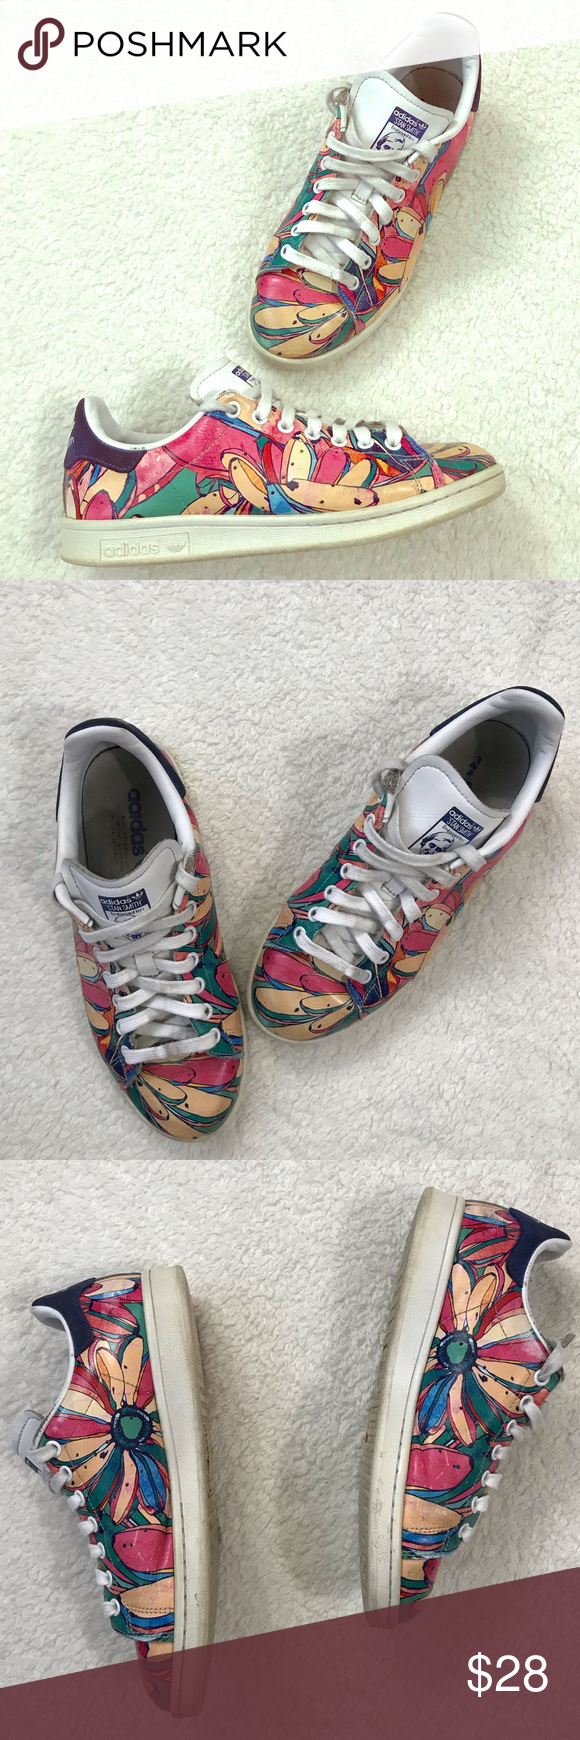 Adidas Stan Smith Floral Colorful Graffiti Sneaker PREOWNED